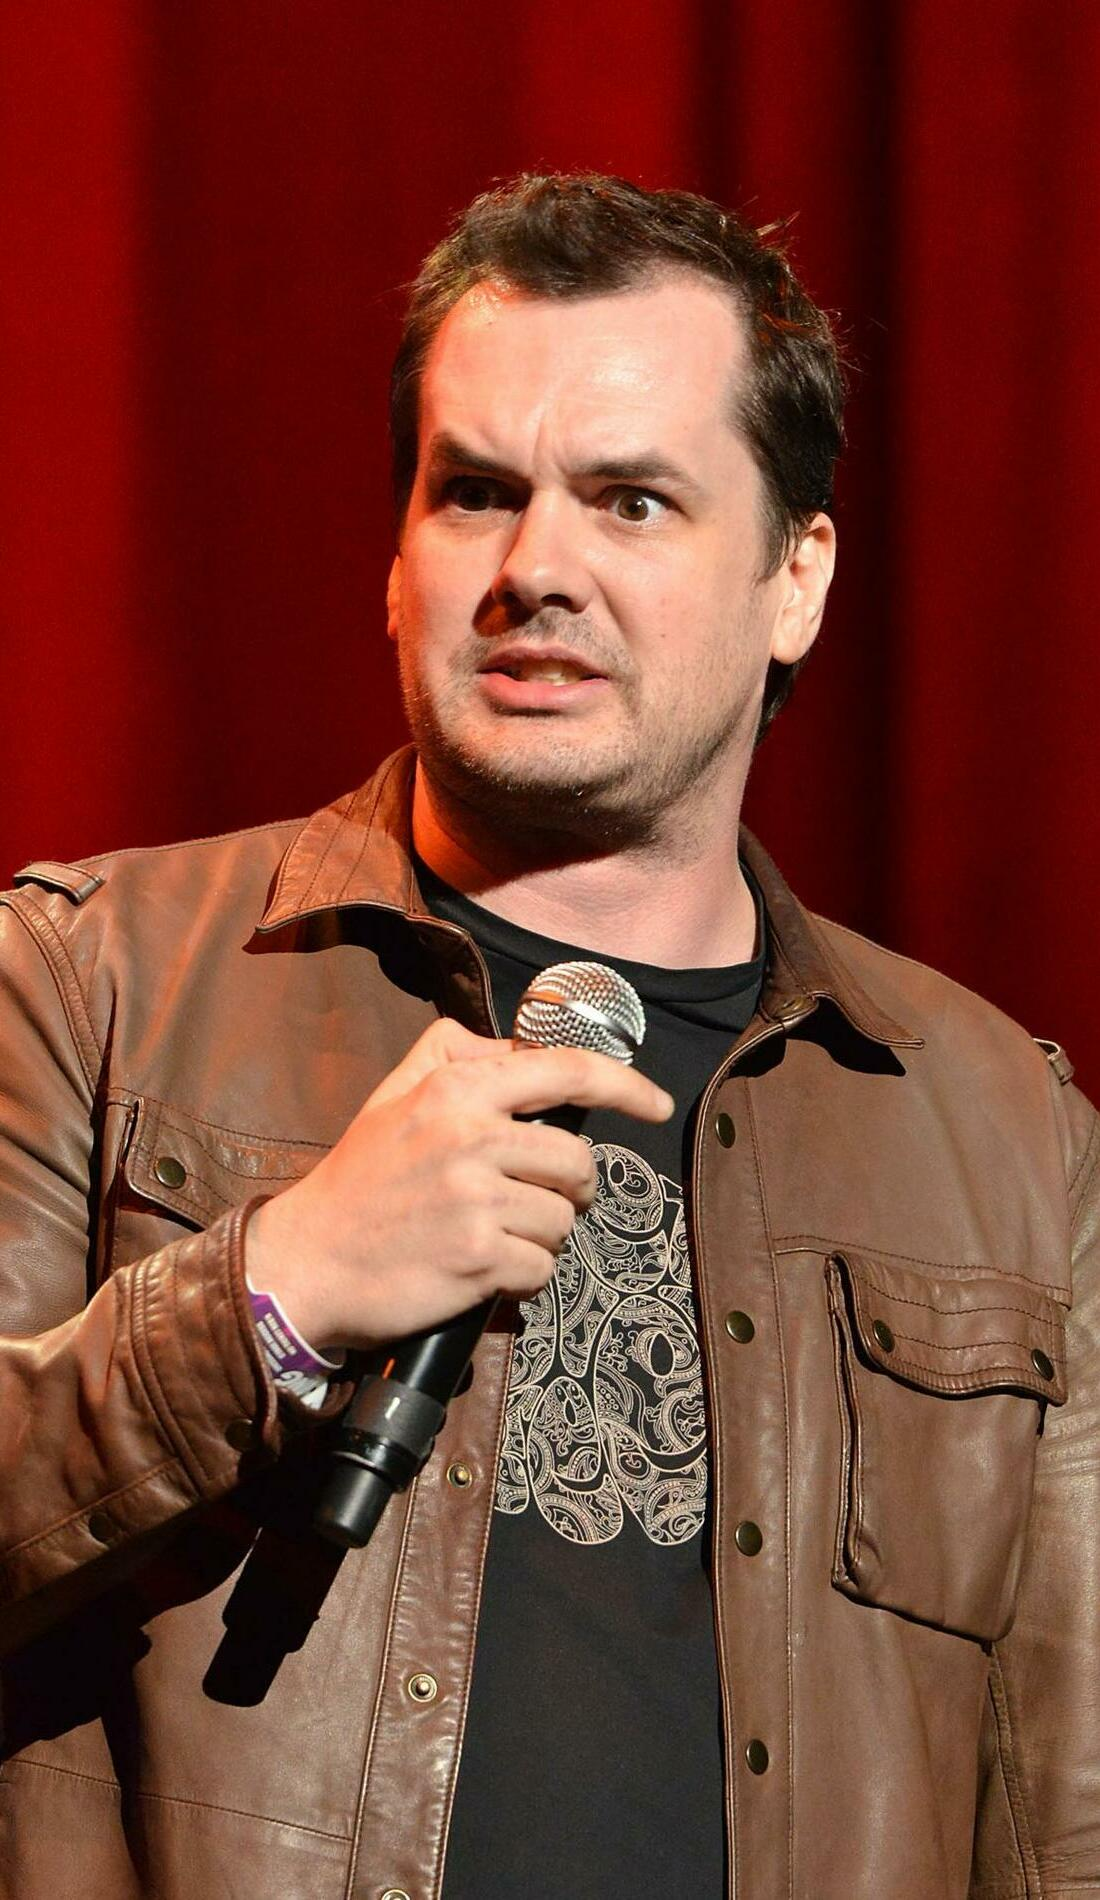 A Jim Jefferies live event